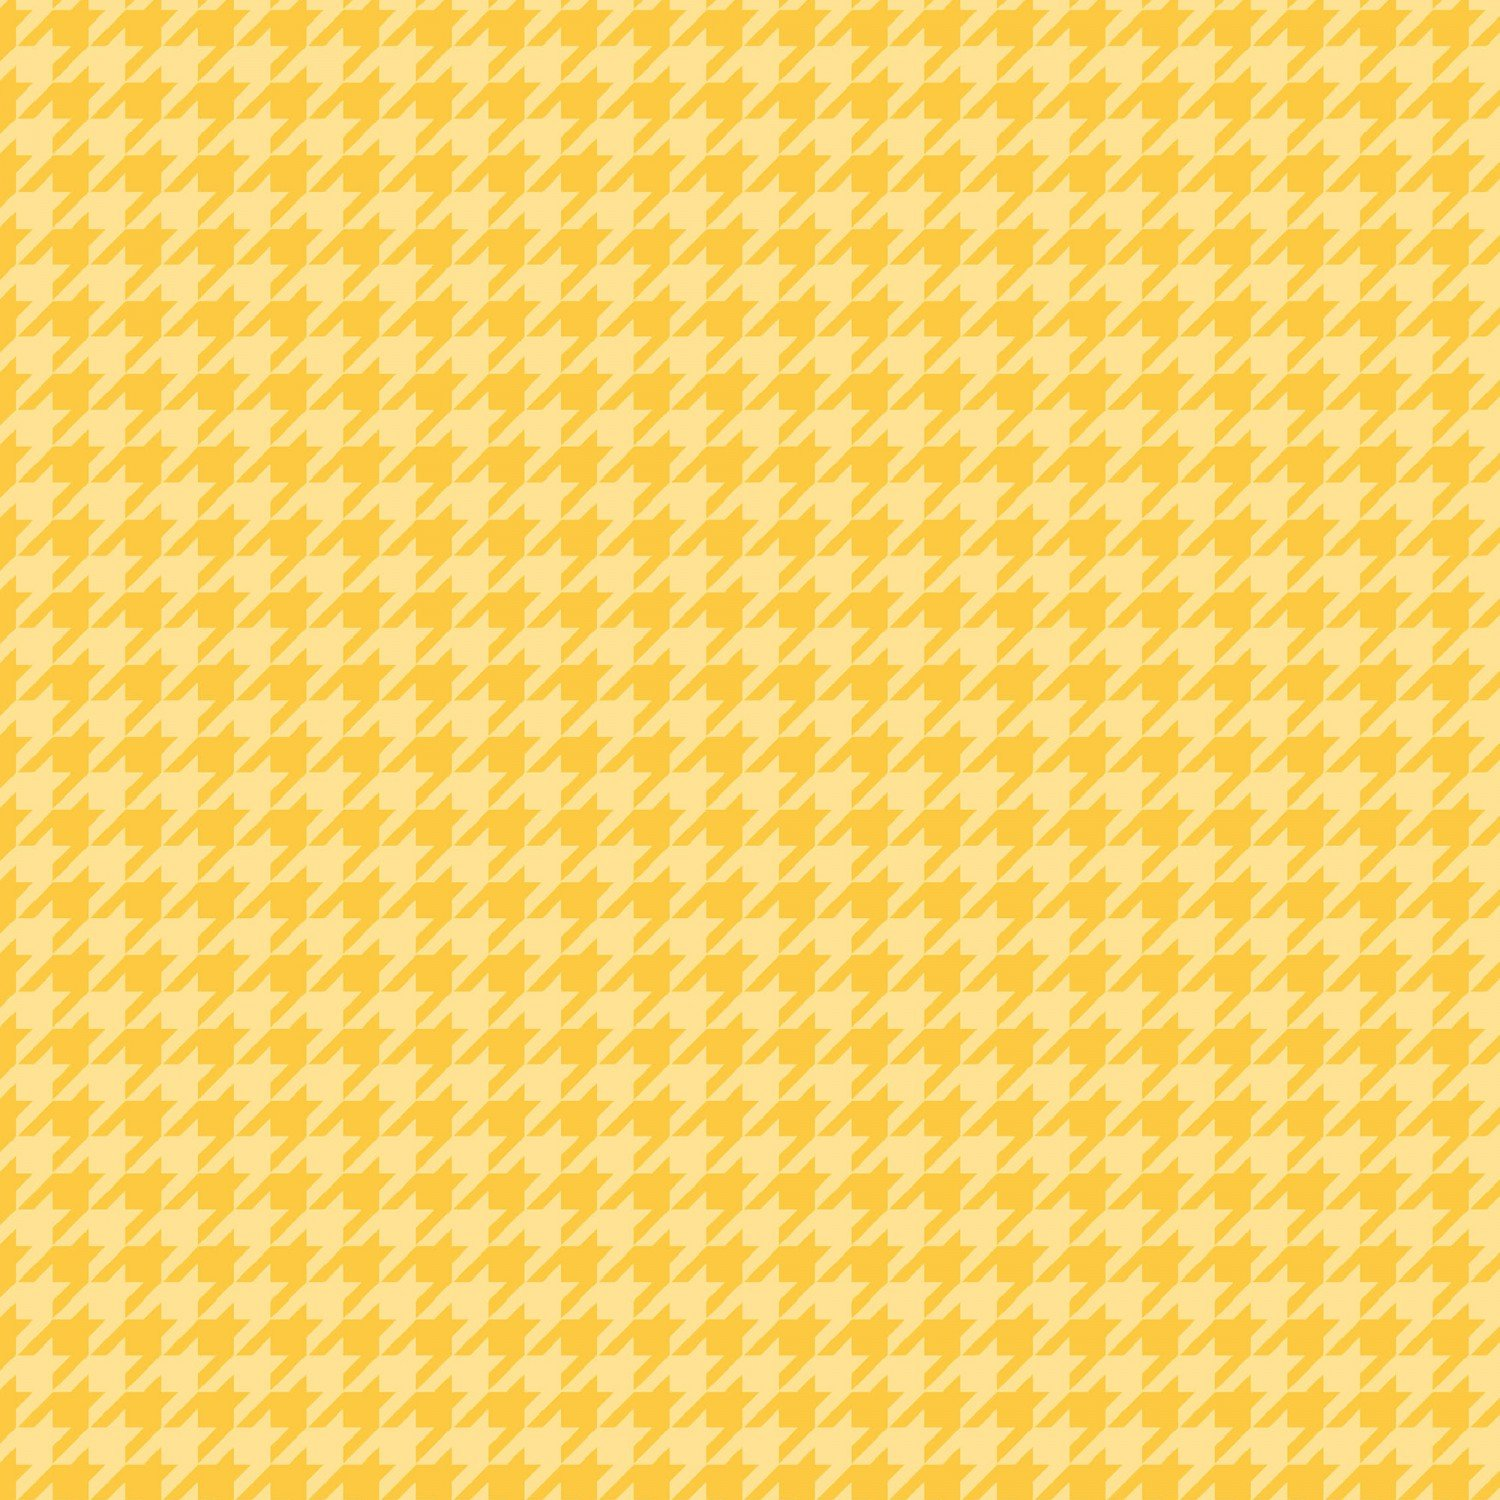 Little One Flannel Sunny-yellow Houndstooth  F8225-S